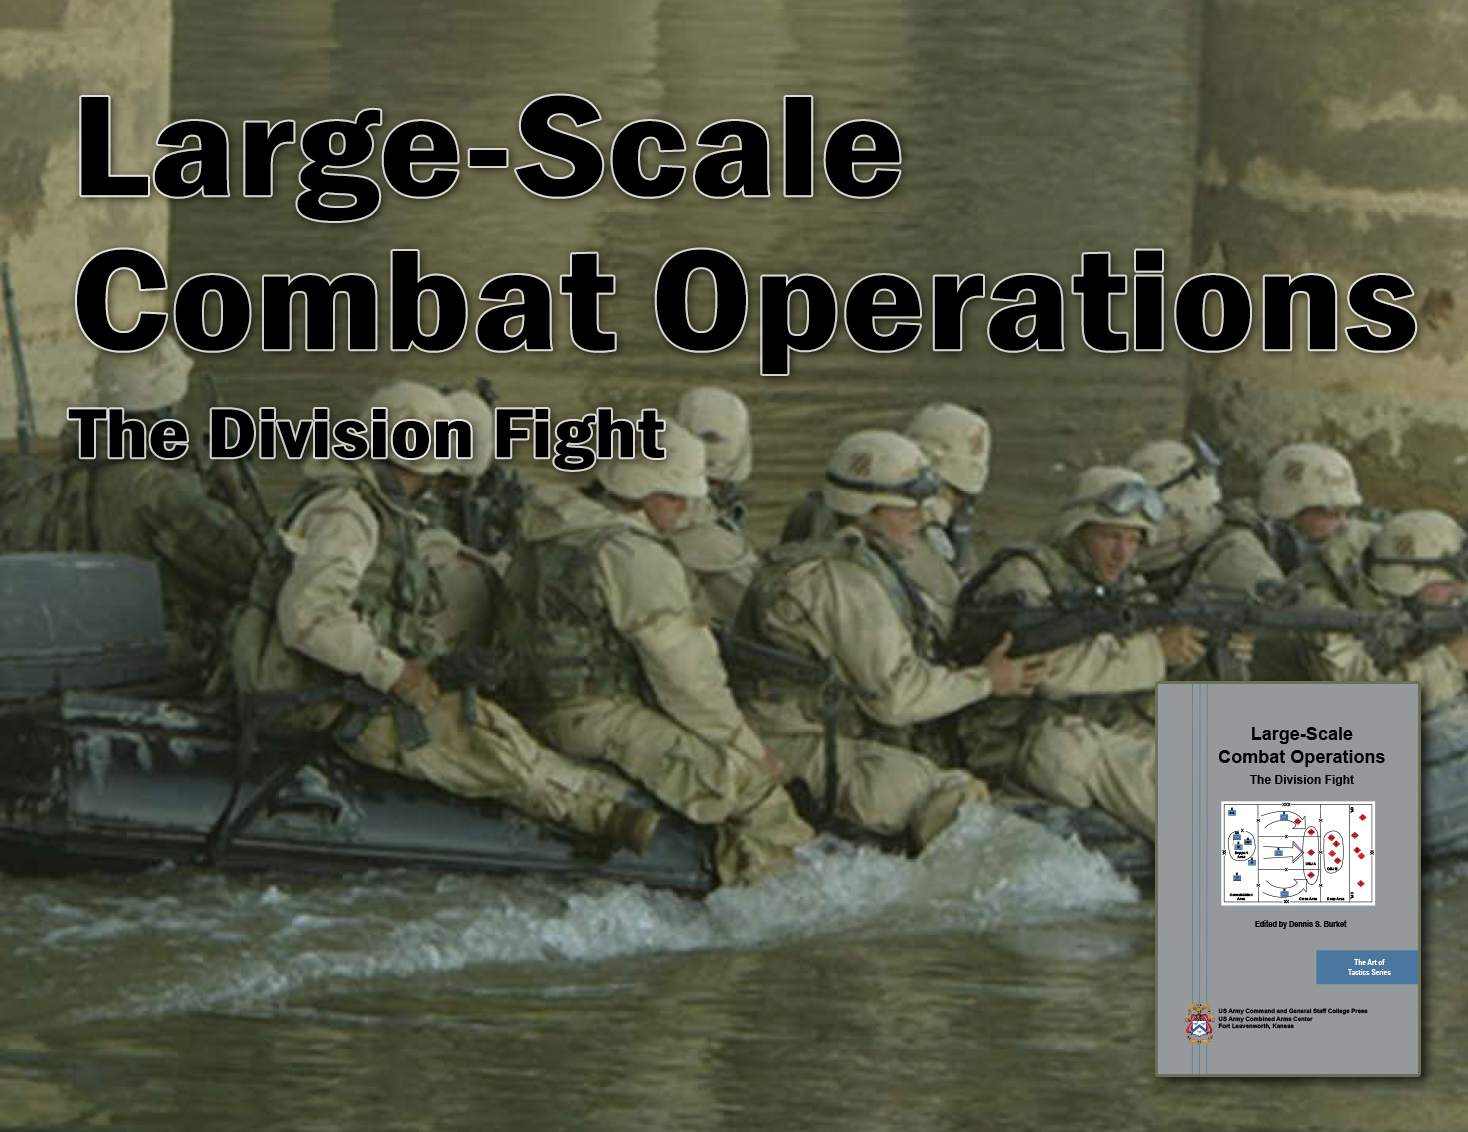 Large-Scale Combat Operations: The Division Fight